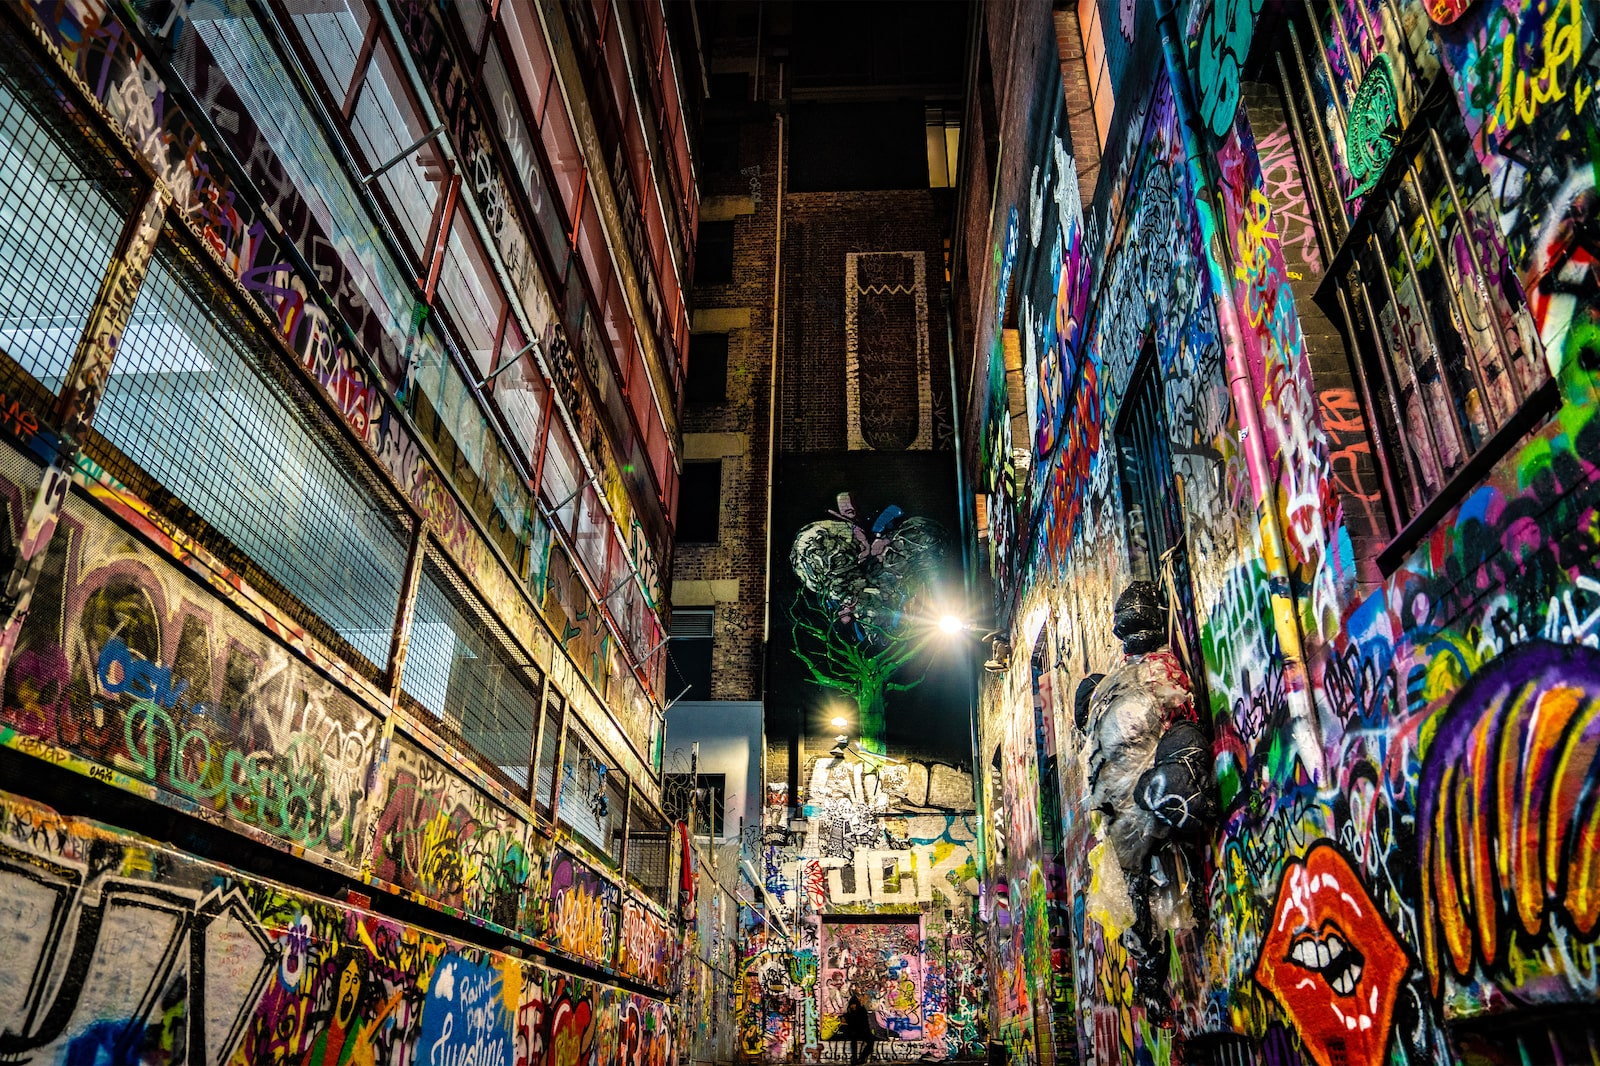 Colourful graffiti lanes facing a brick wall in Hosier Lane